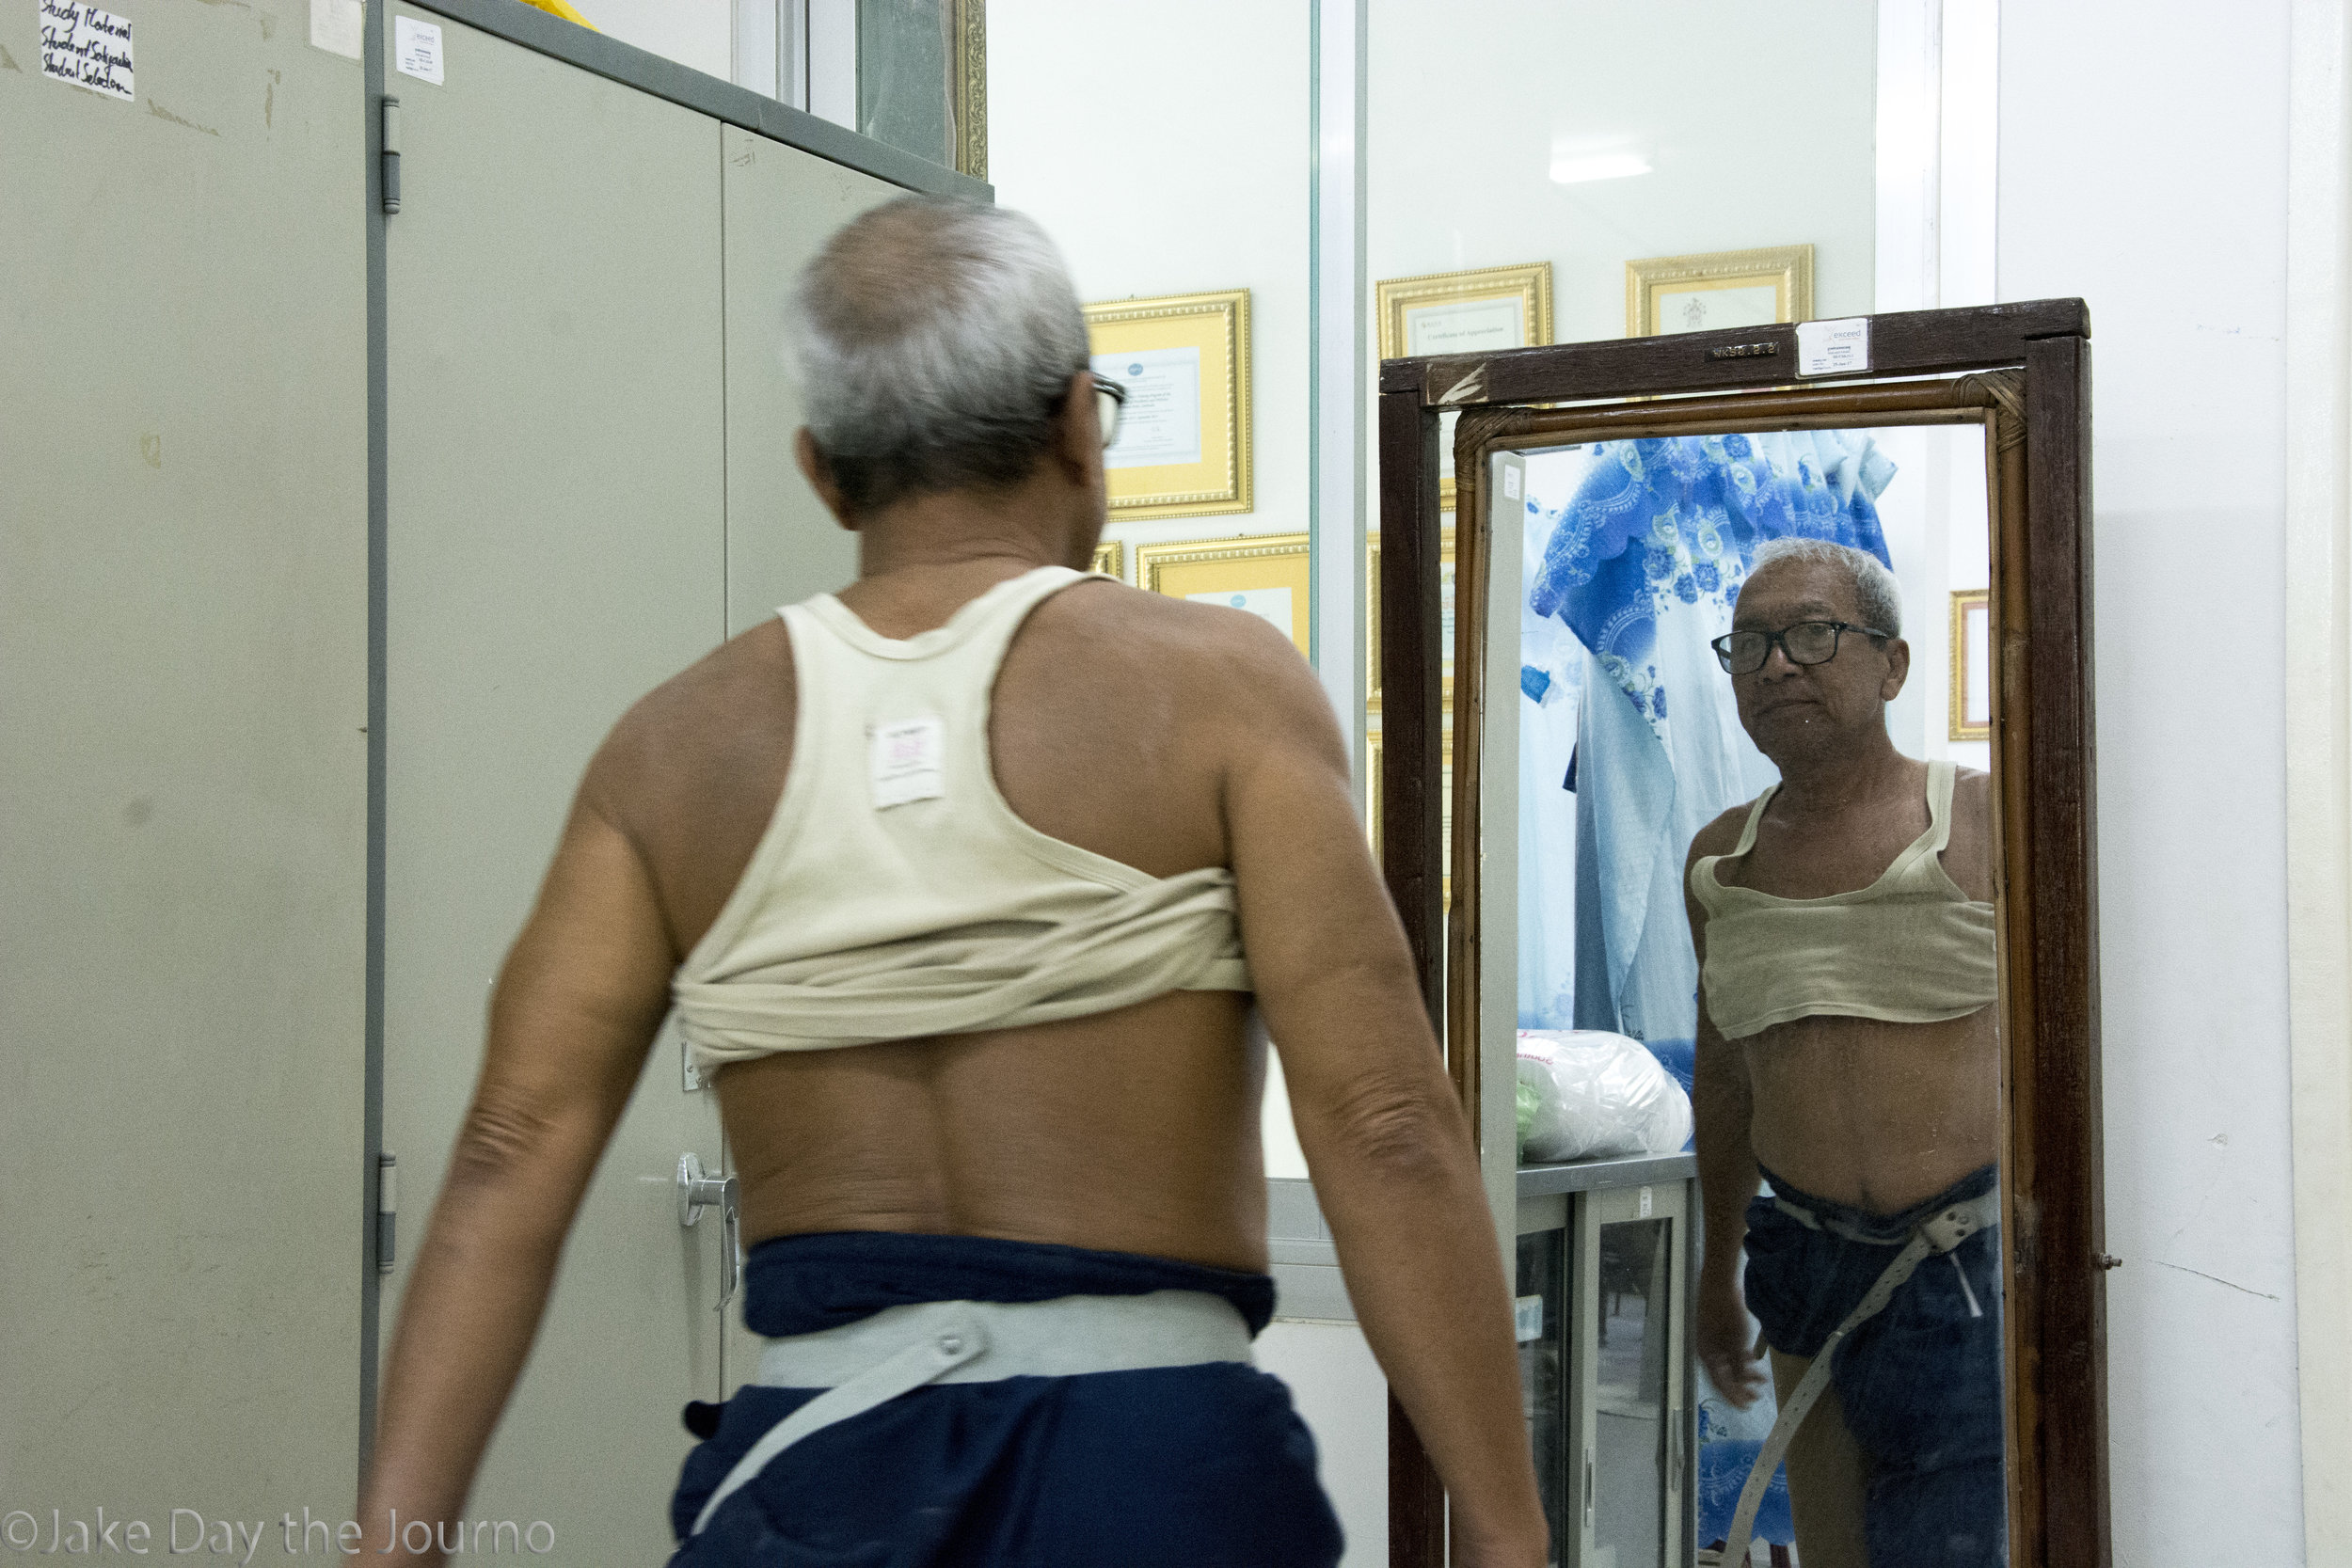 Chim Samang, 60, sizes himself in a mirror during gait testing at the Exceed Cambodian School of Prosthetics and Orthotics on 15/01/18 by Jake Day. Mr Samang lost his leg after stepping on a landmine in 1986 when he was a soldier.